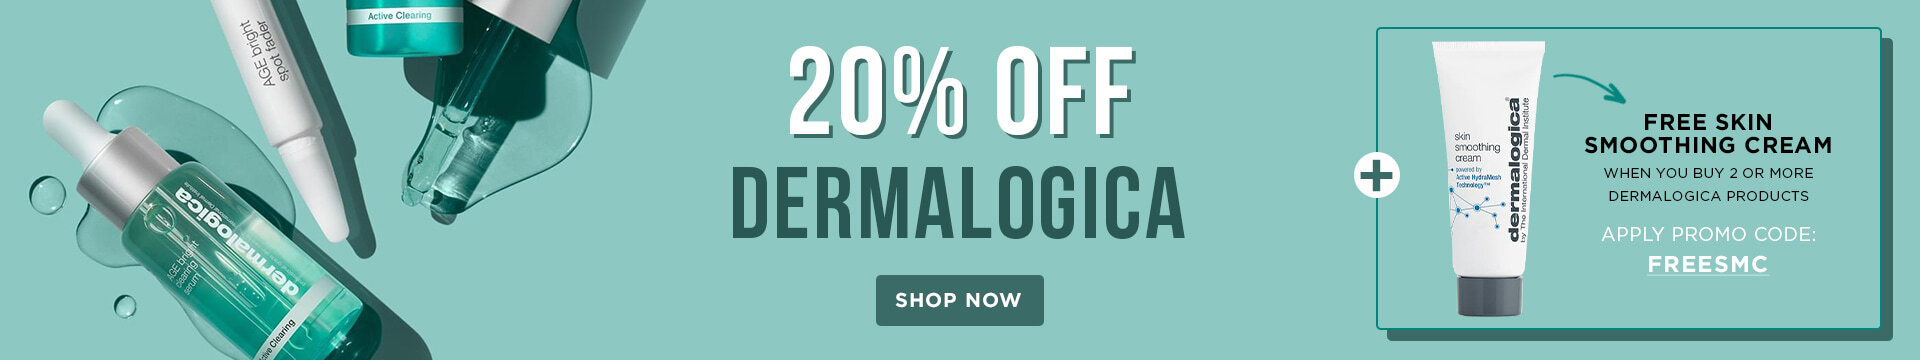 Dermalogica 20% OFF + Free Gift